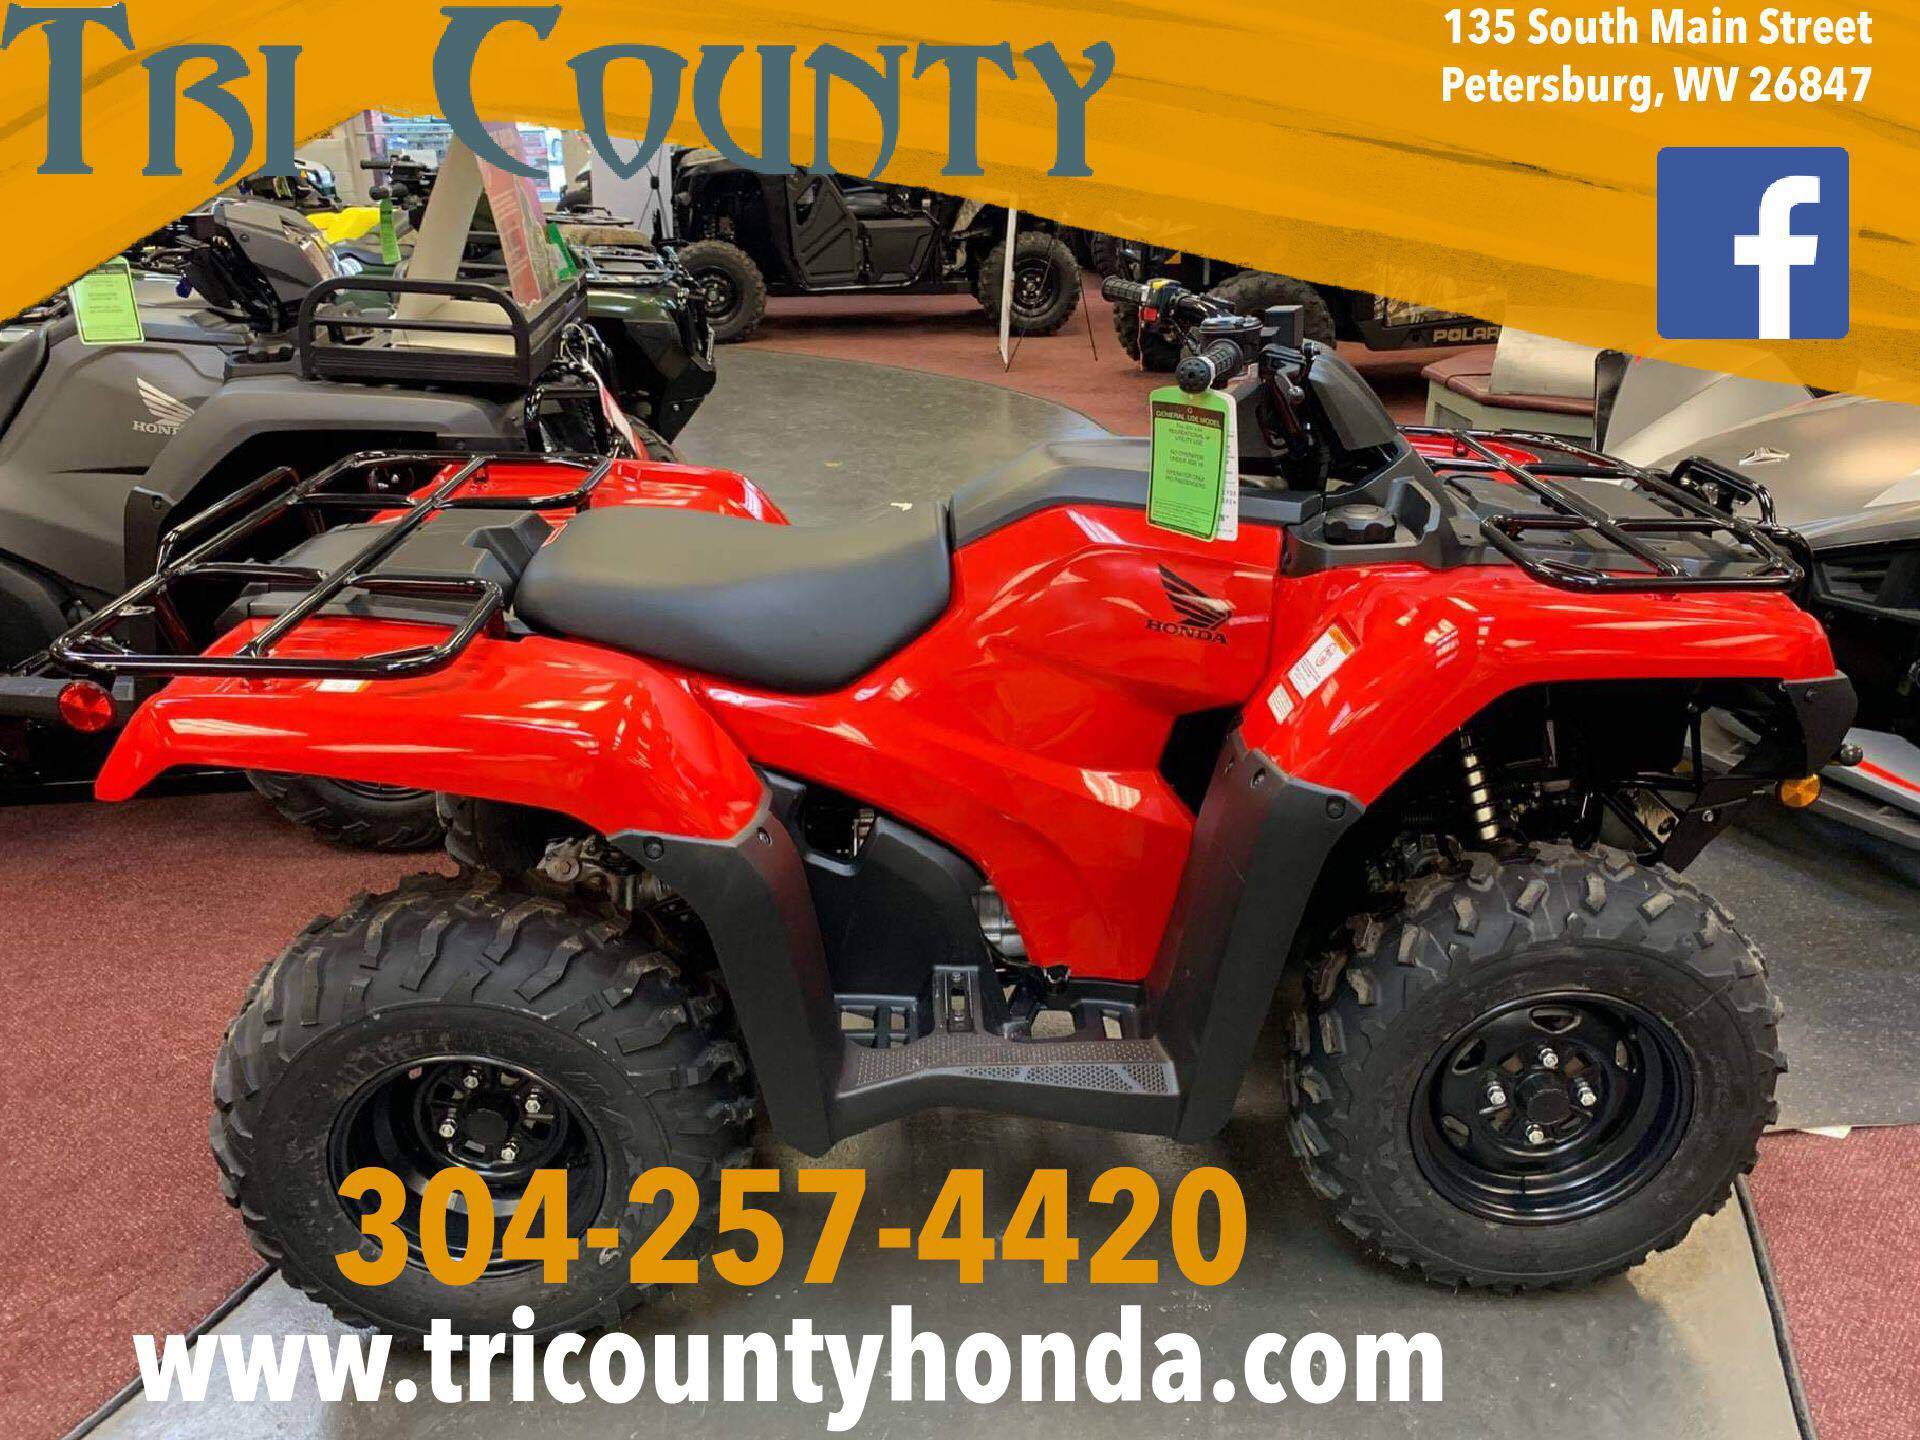 2019 Honda FourTrax Rancher 4x4 in Petersburg, West Virginia